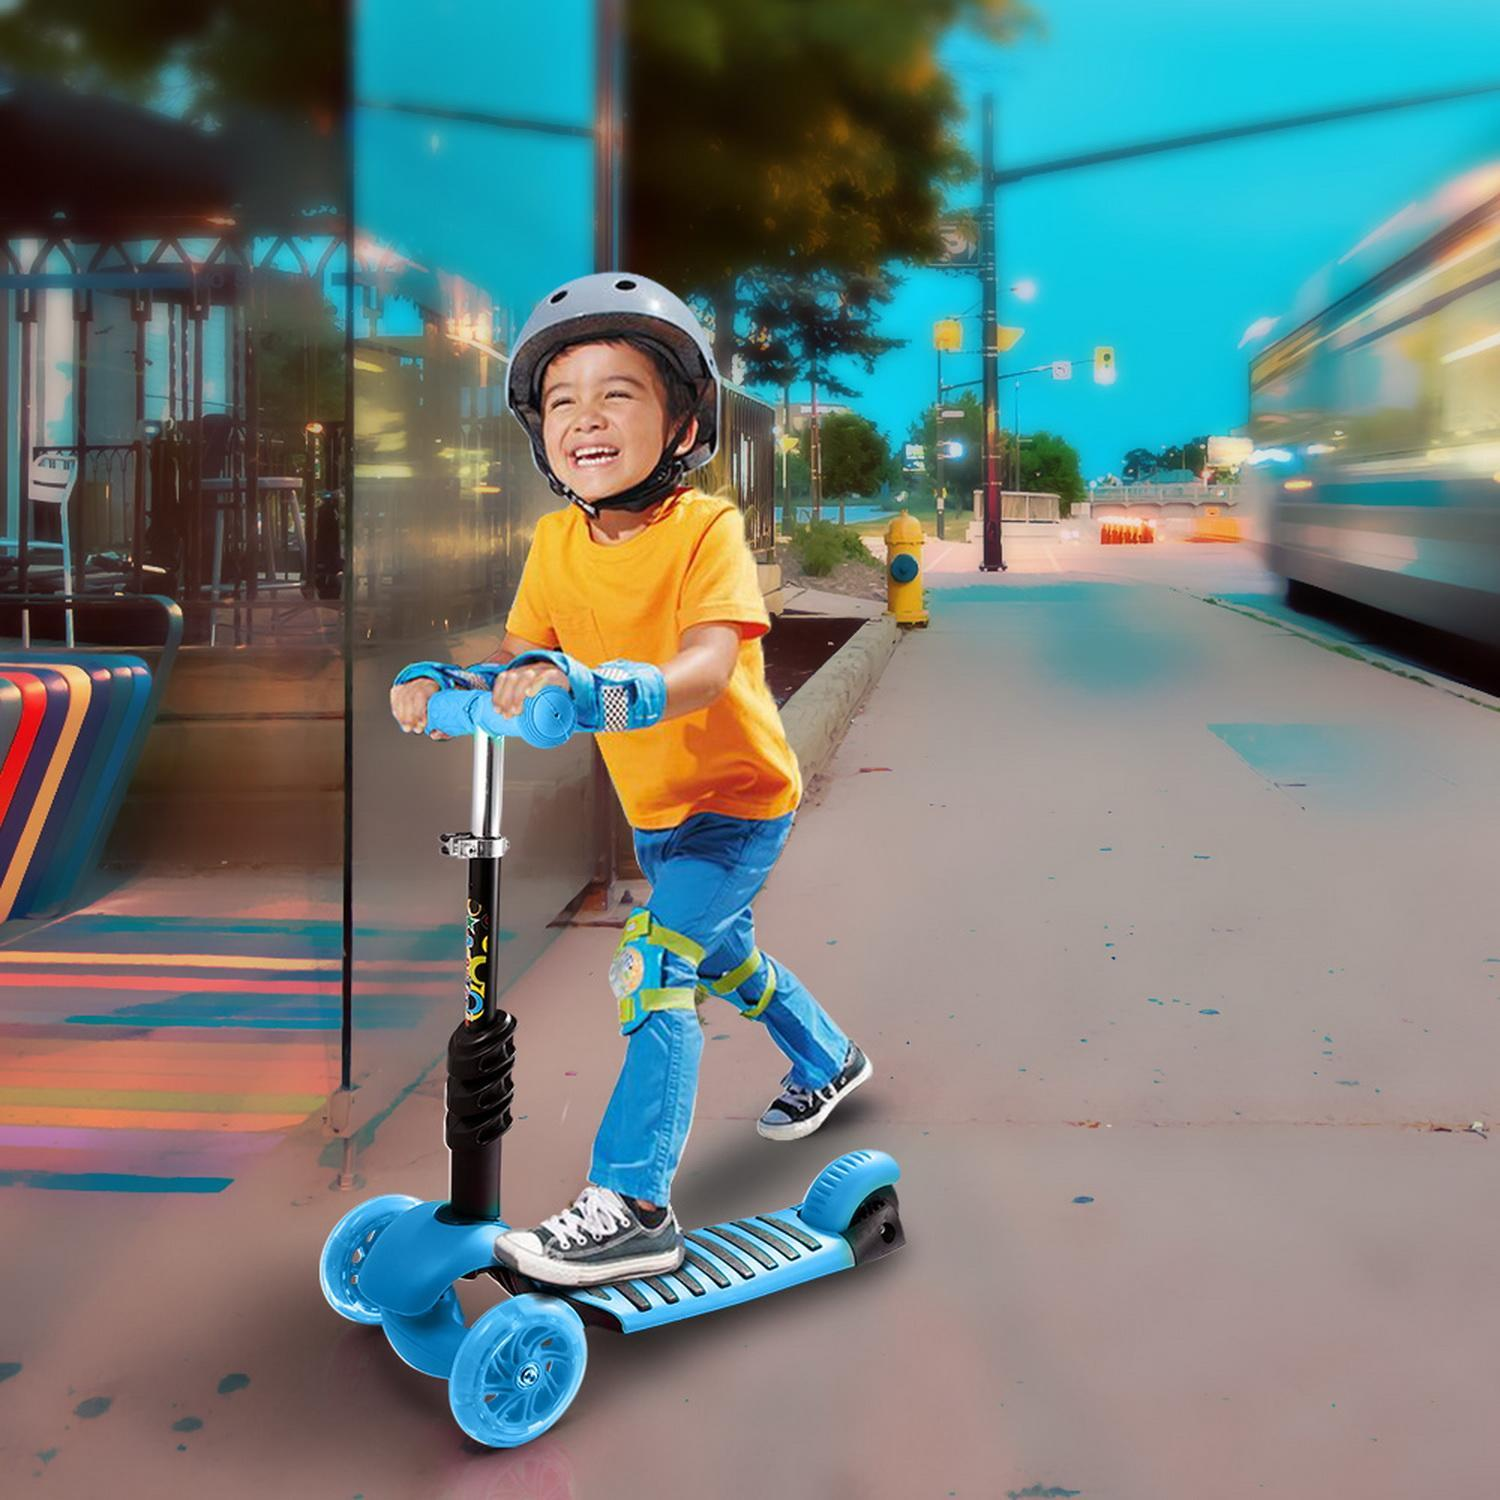 Scooter 3 Wheel Kick Scooter for Kids Boys Girls Adjustable Height PU Flashing Wheels Best... by